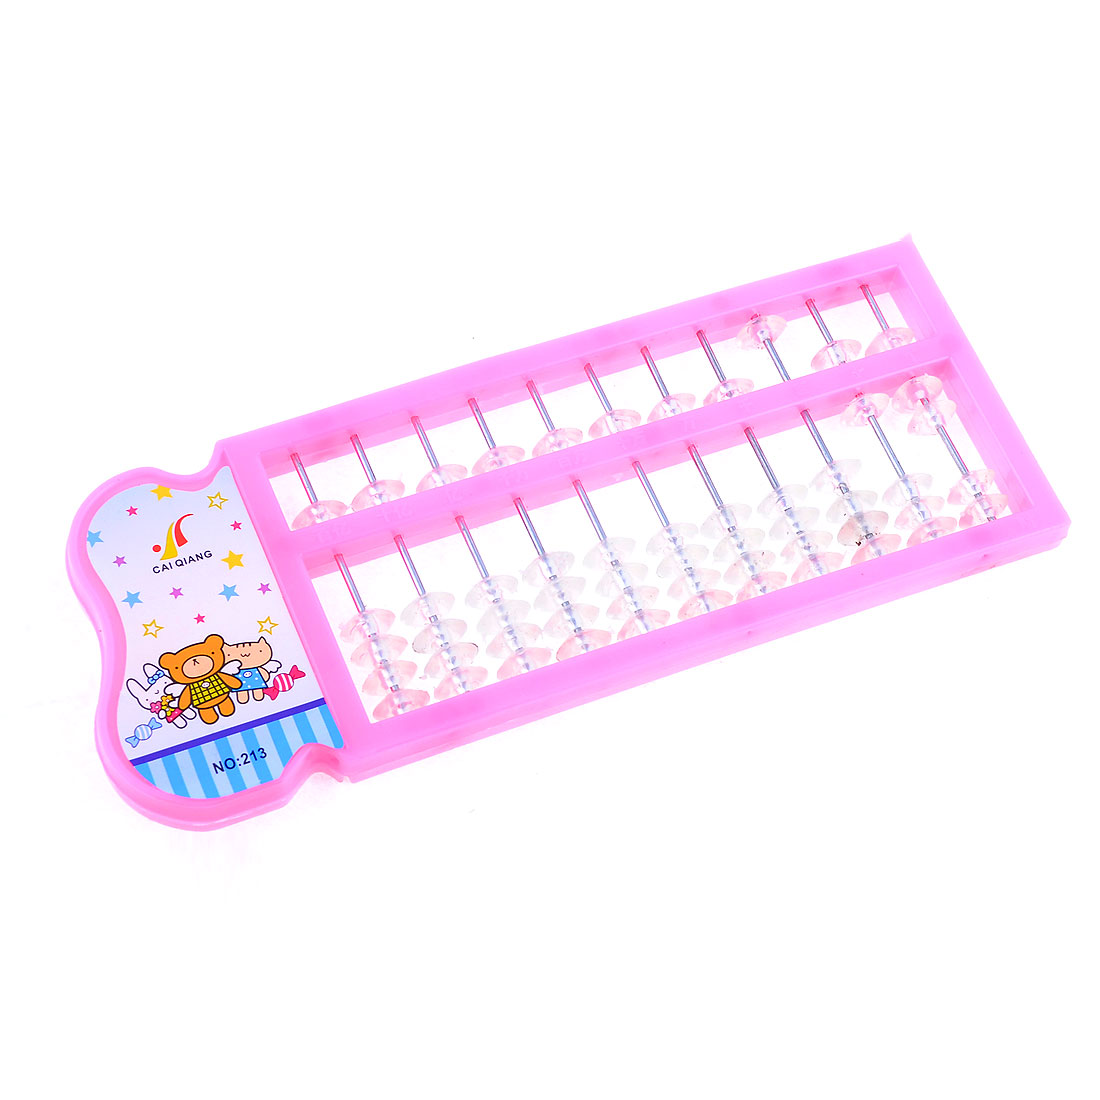 55 Beaded 11 Rods Plastic Frame Arithmetic Abacus Soroban Pink